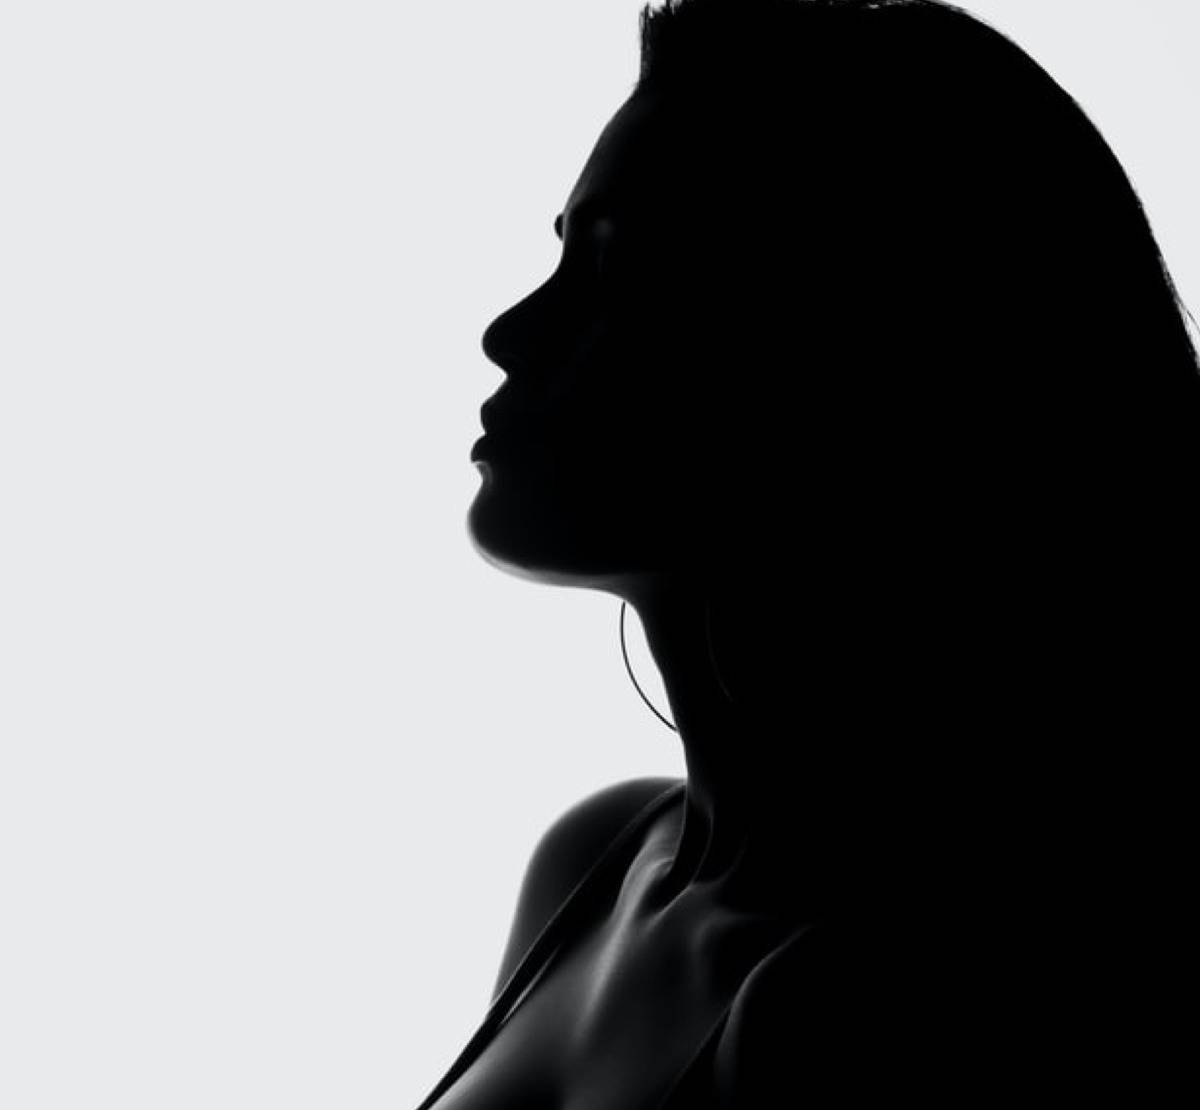 Close up shot of side profile silhouette of woman